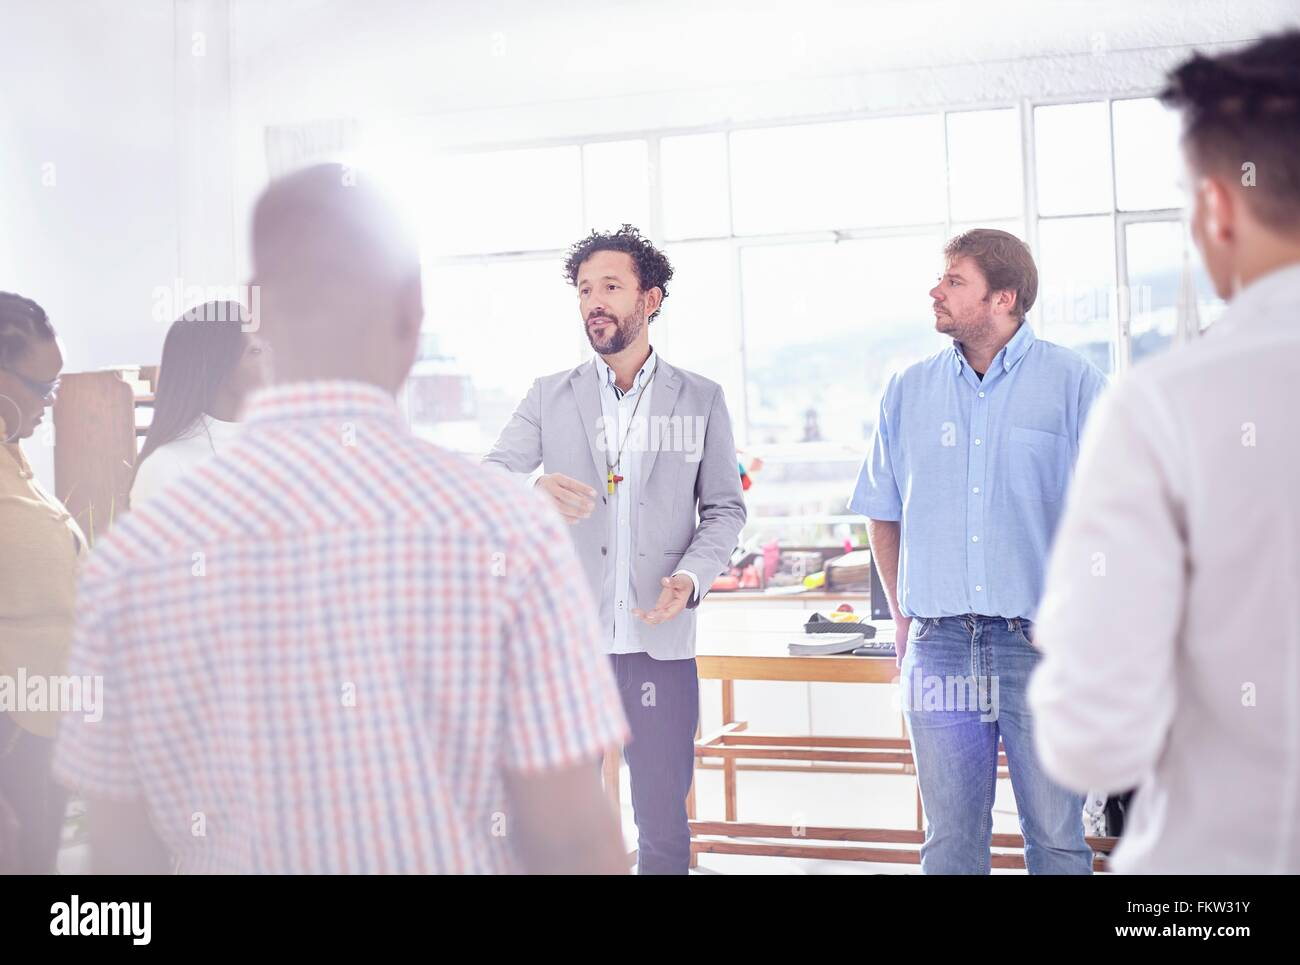 Mature man in  fice speaking to colleagues - Stock Image